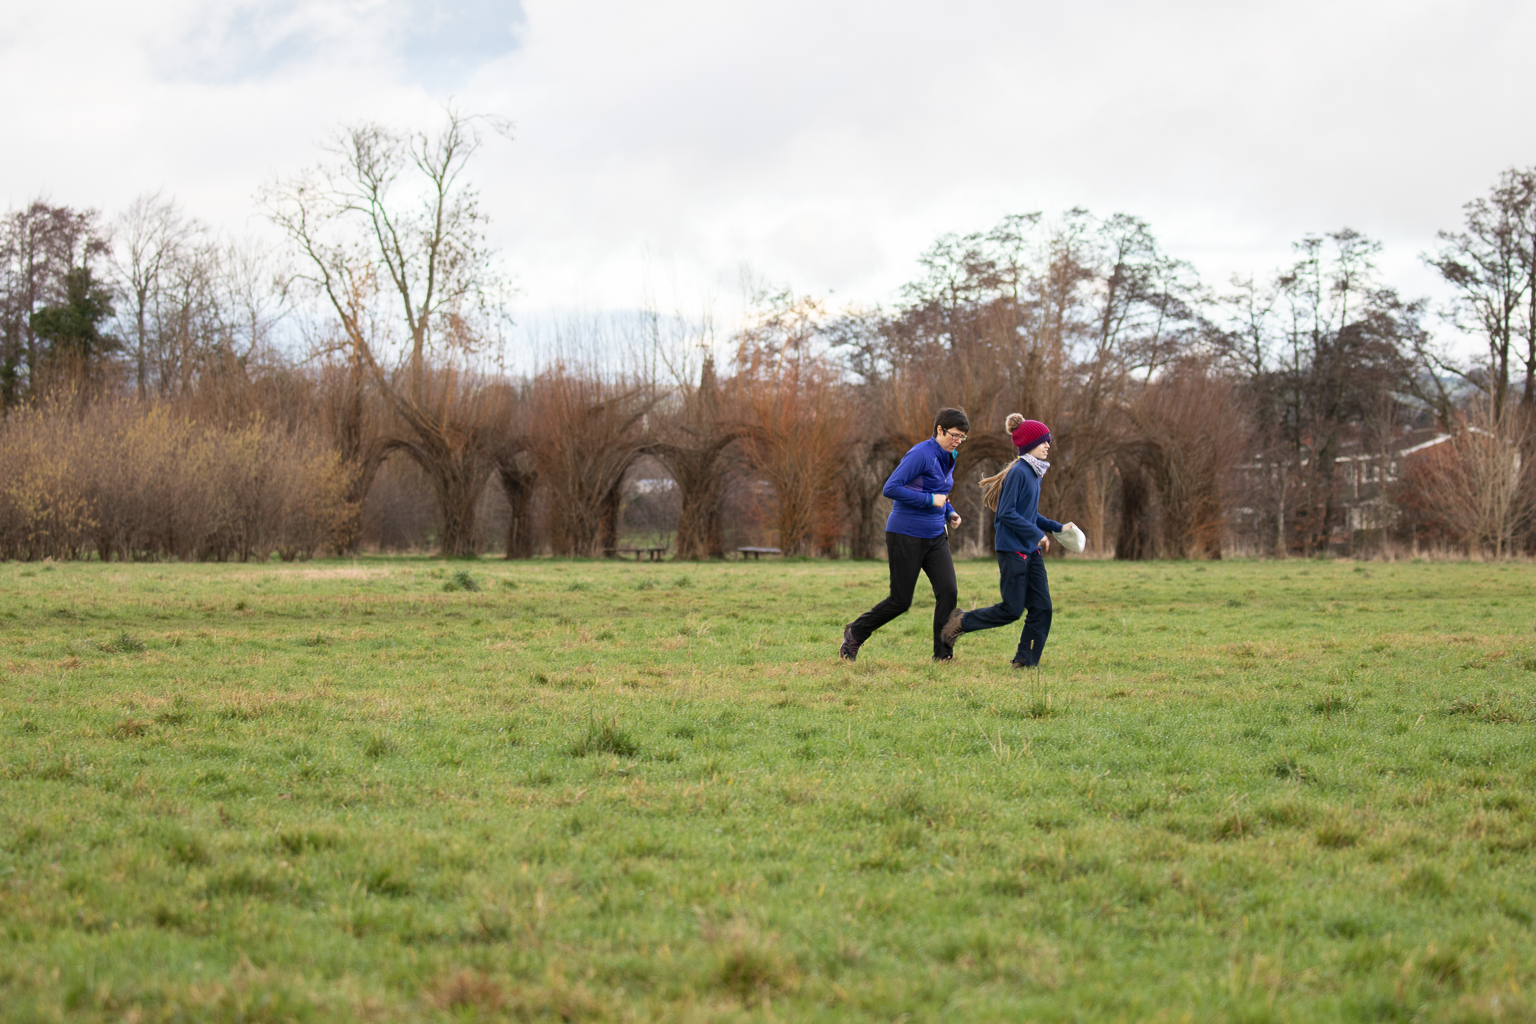 Two people running across a field with piece of paper.